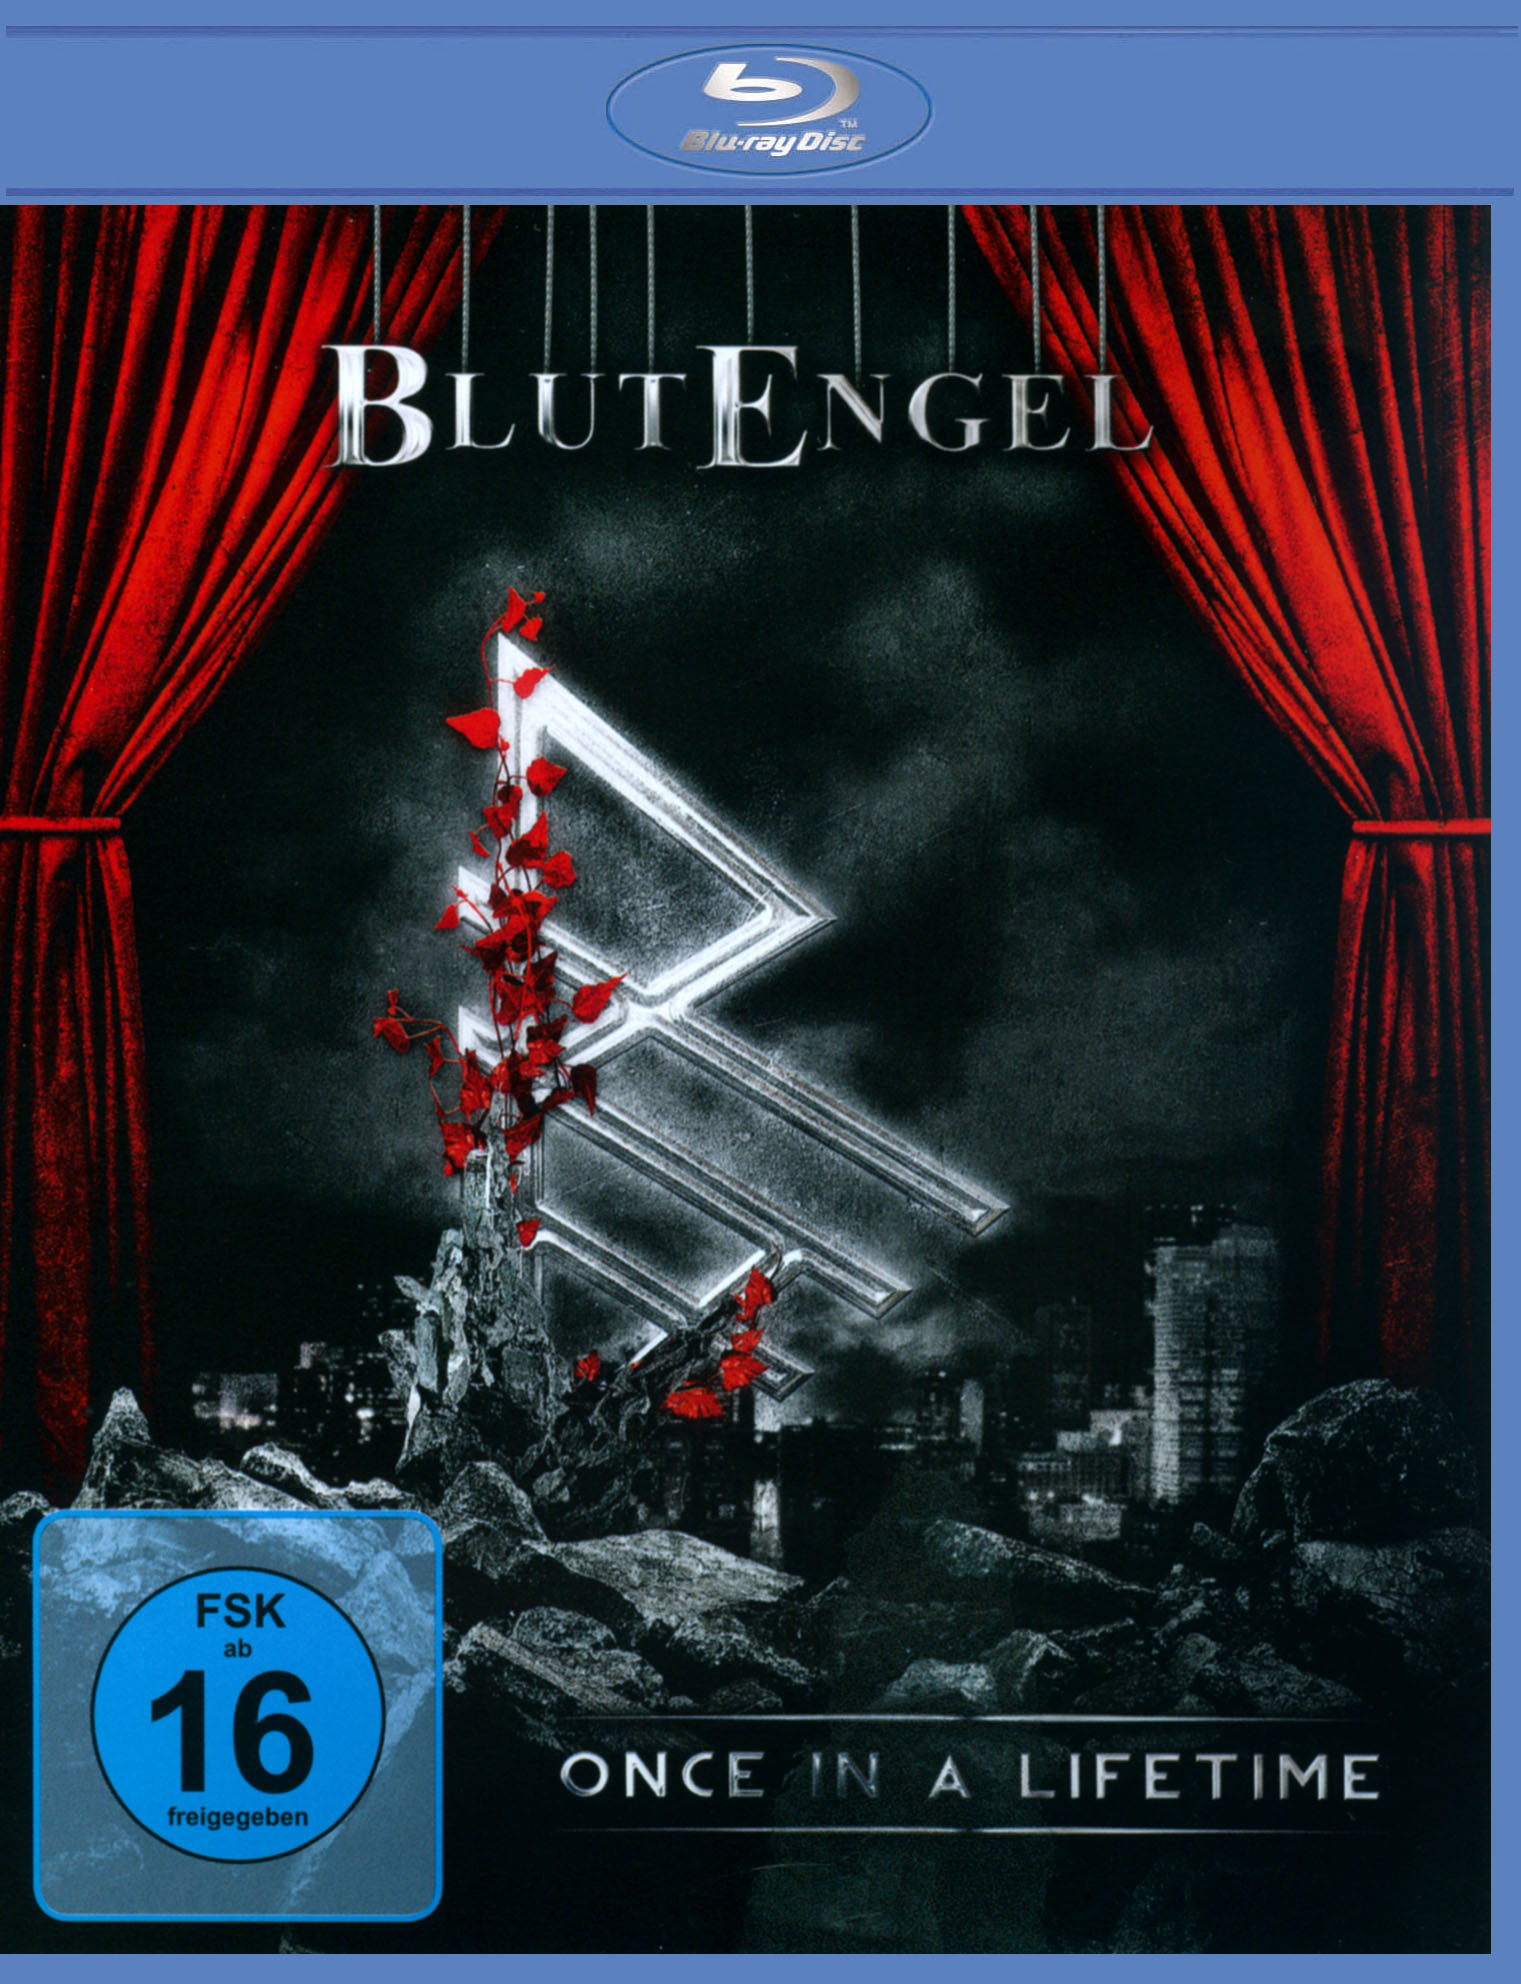 Blutengel: Once in a Lifetime